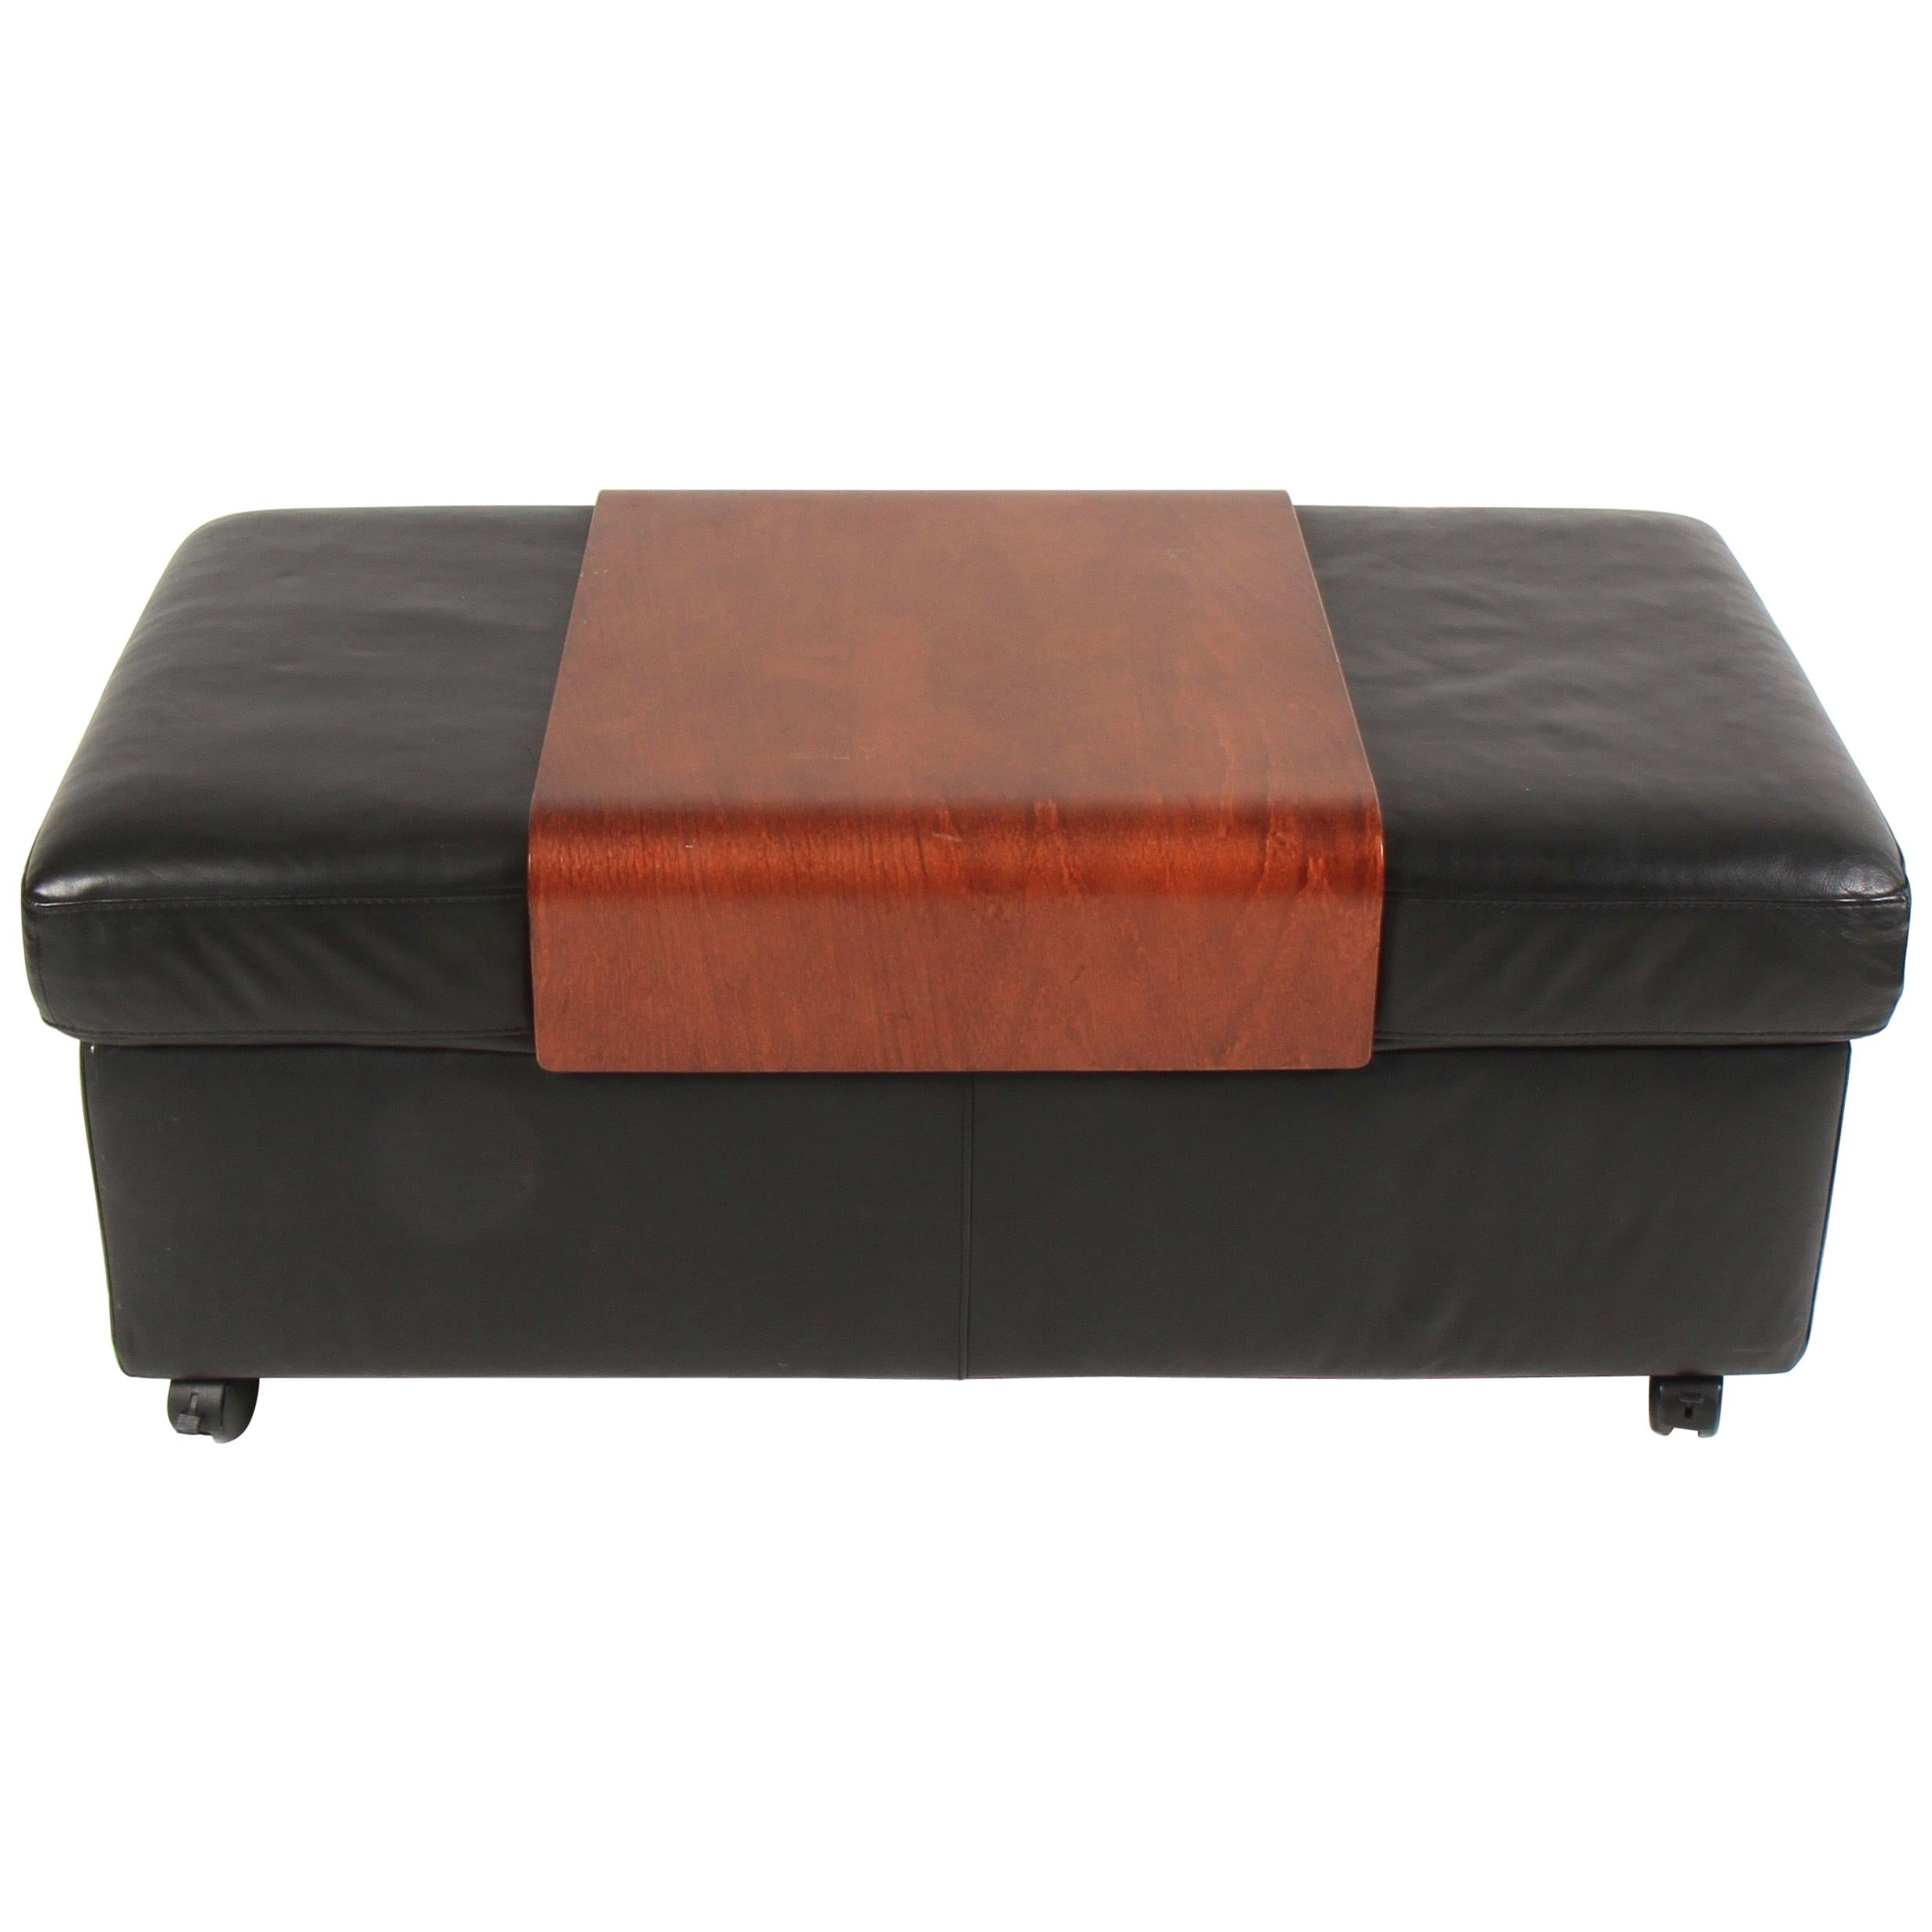 Super Donghia Housepets Square Ottoman At 1Stdibs Cjindustries Chair Design For Home Cjindustriesco